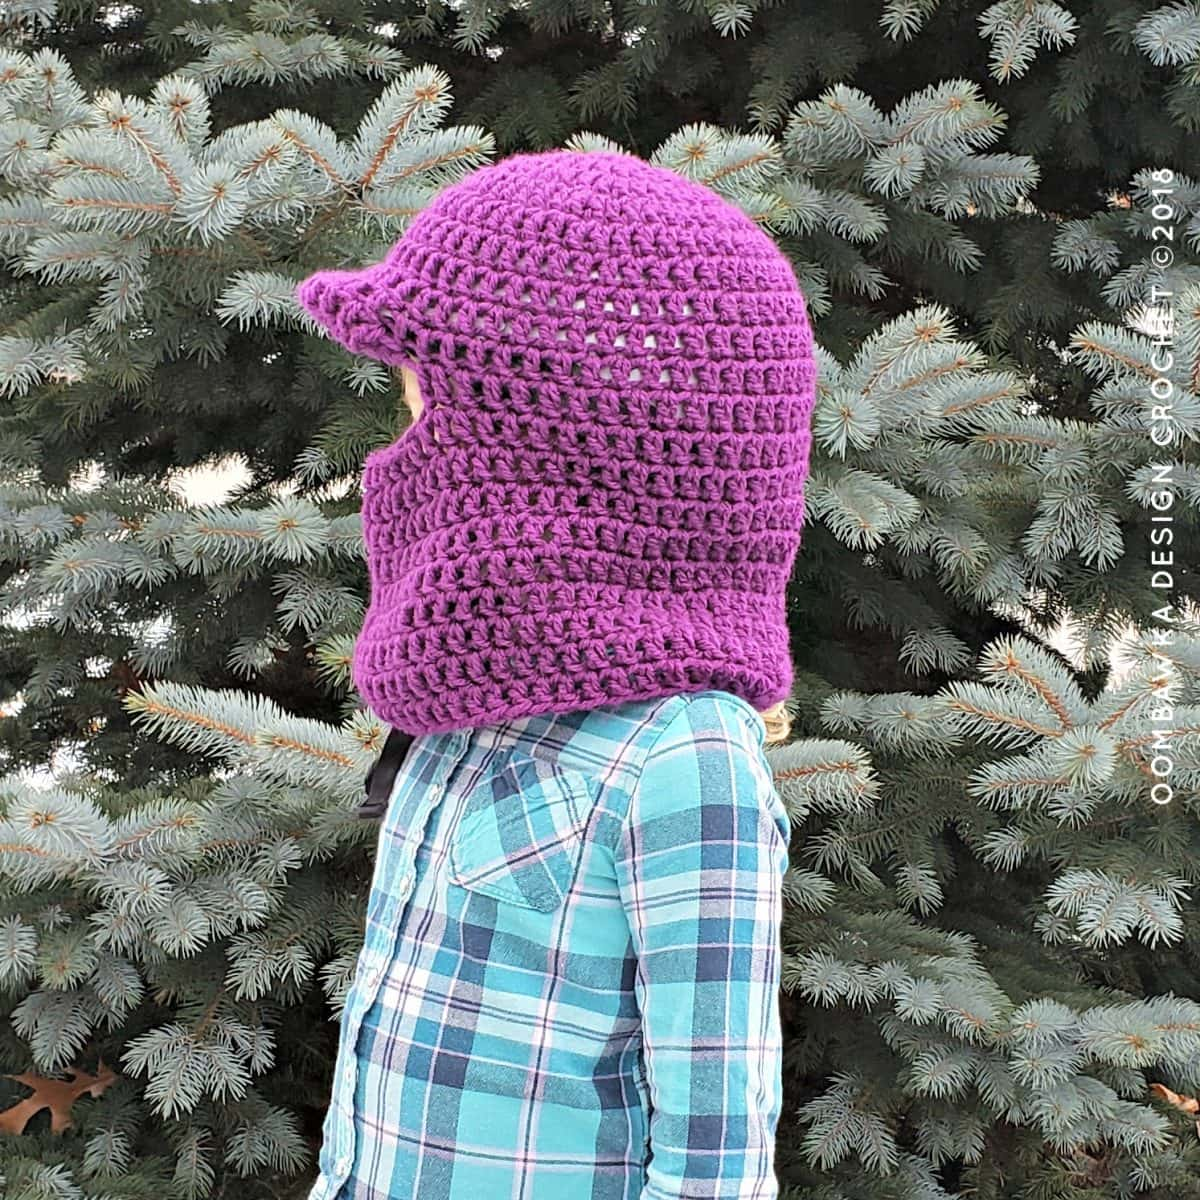 Winter Horseback Riding Helmet Cover Pattern side view from Oombawka Design Crochet